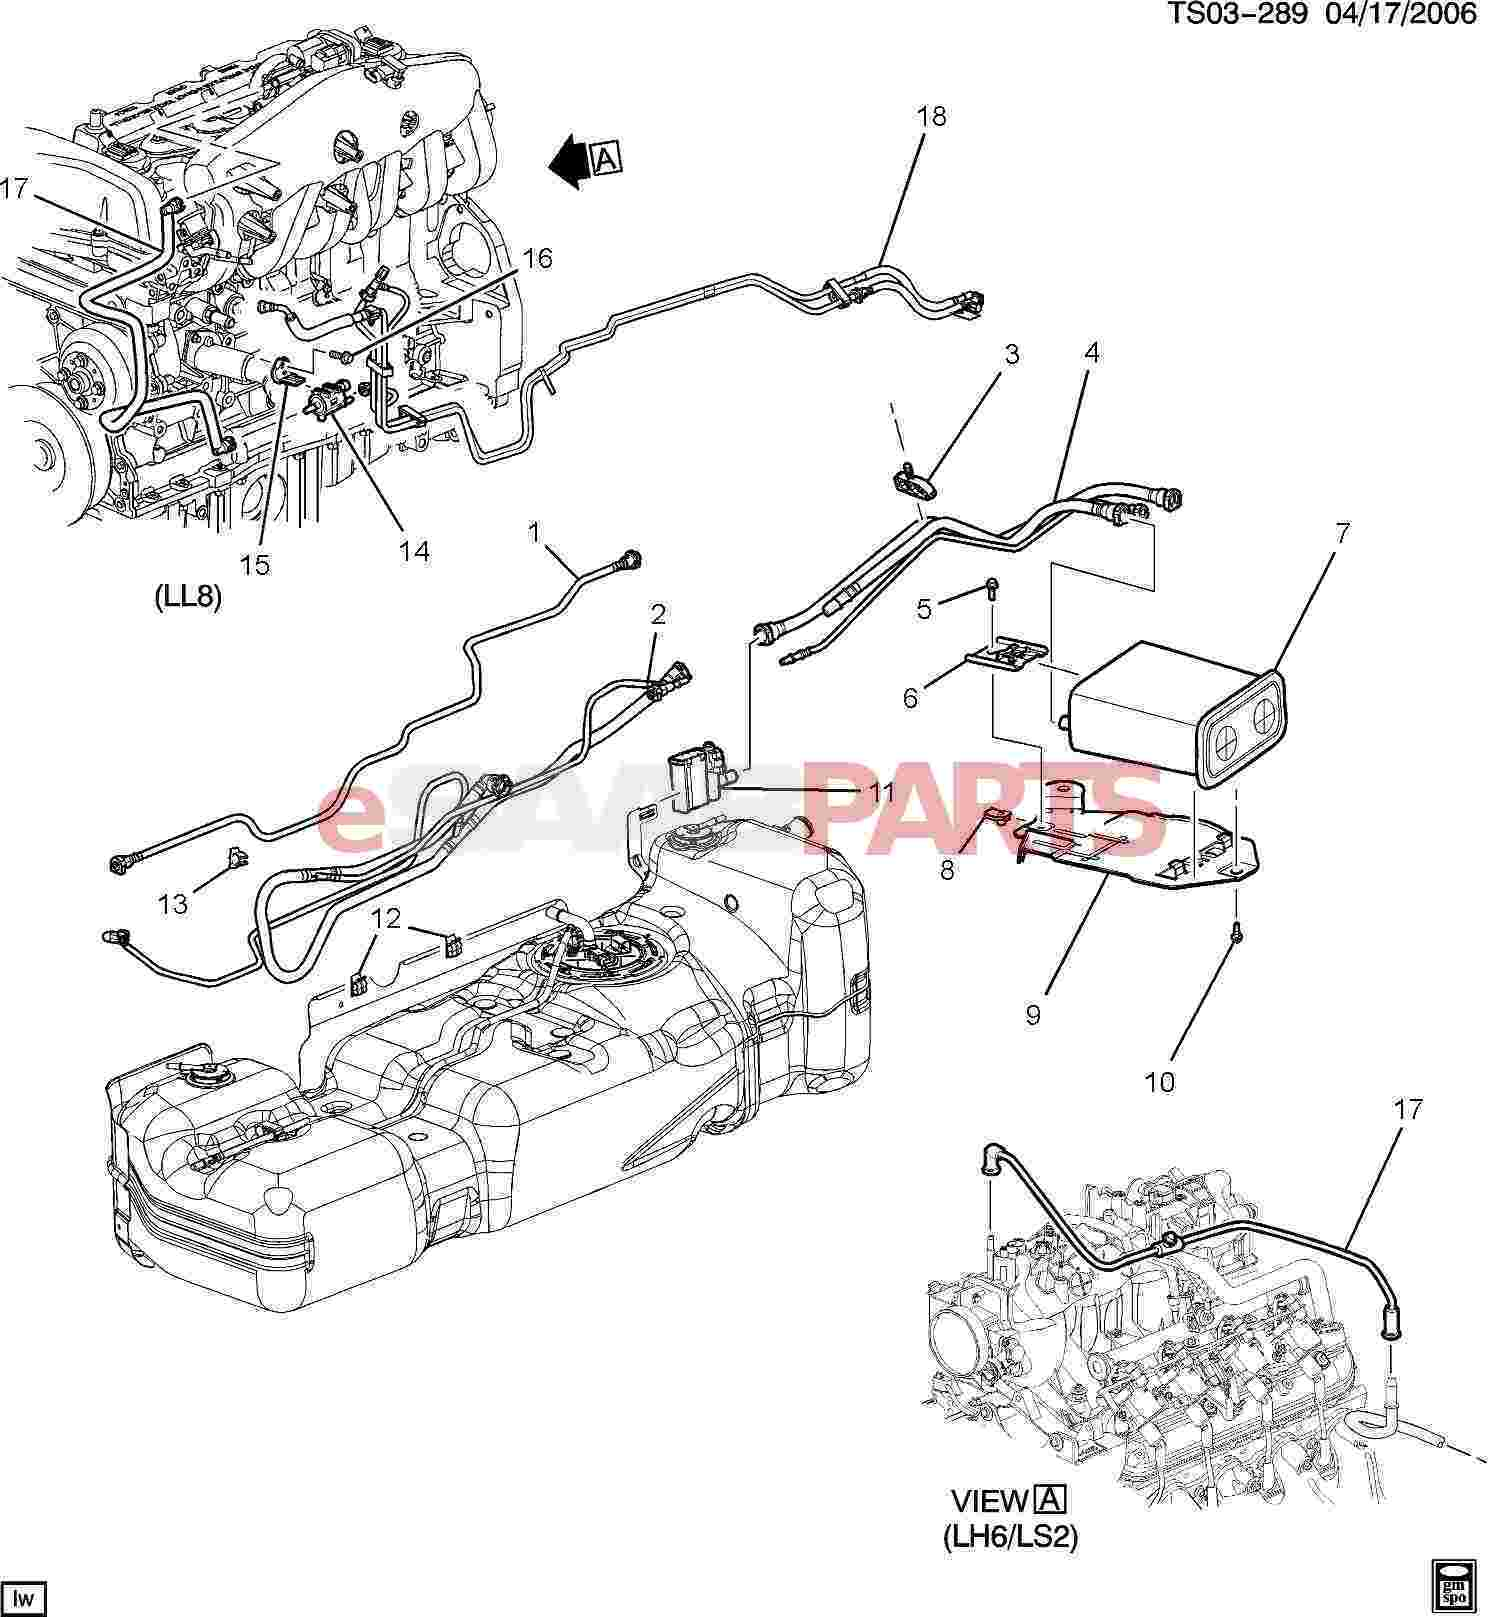 7cmbv Chevrolet Express 3500 Drain Coolant Drain furthermore 2016 Ford F150 Tail Light Wiring Diagram additionally 0996b43f80231a17 In 2002 Chevy Silverado Wiring Diagram likewise S10 Digital Dash Install furthermore 1991 Chevy Astro Fuse Box. on 2001 chevy silverado engine diagram